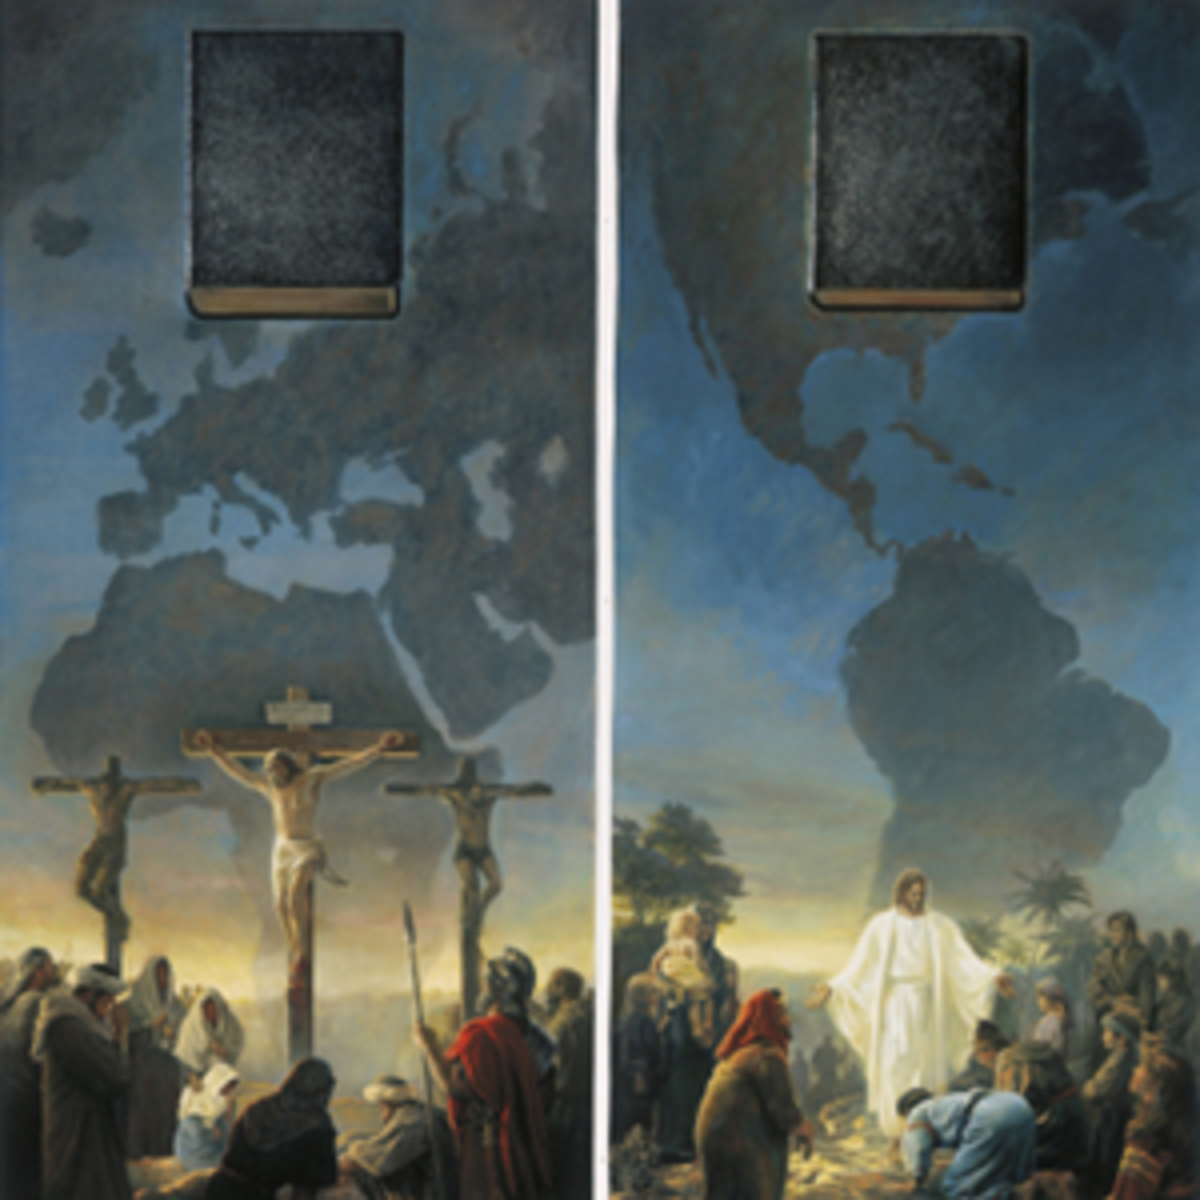 Jesus crucified on the cross and taught in the Americas